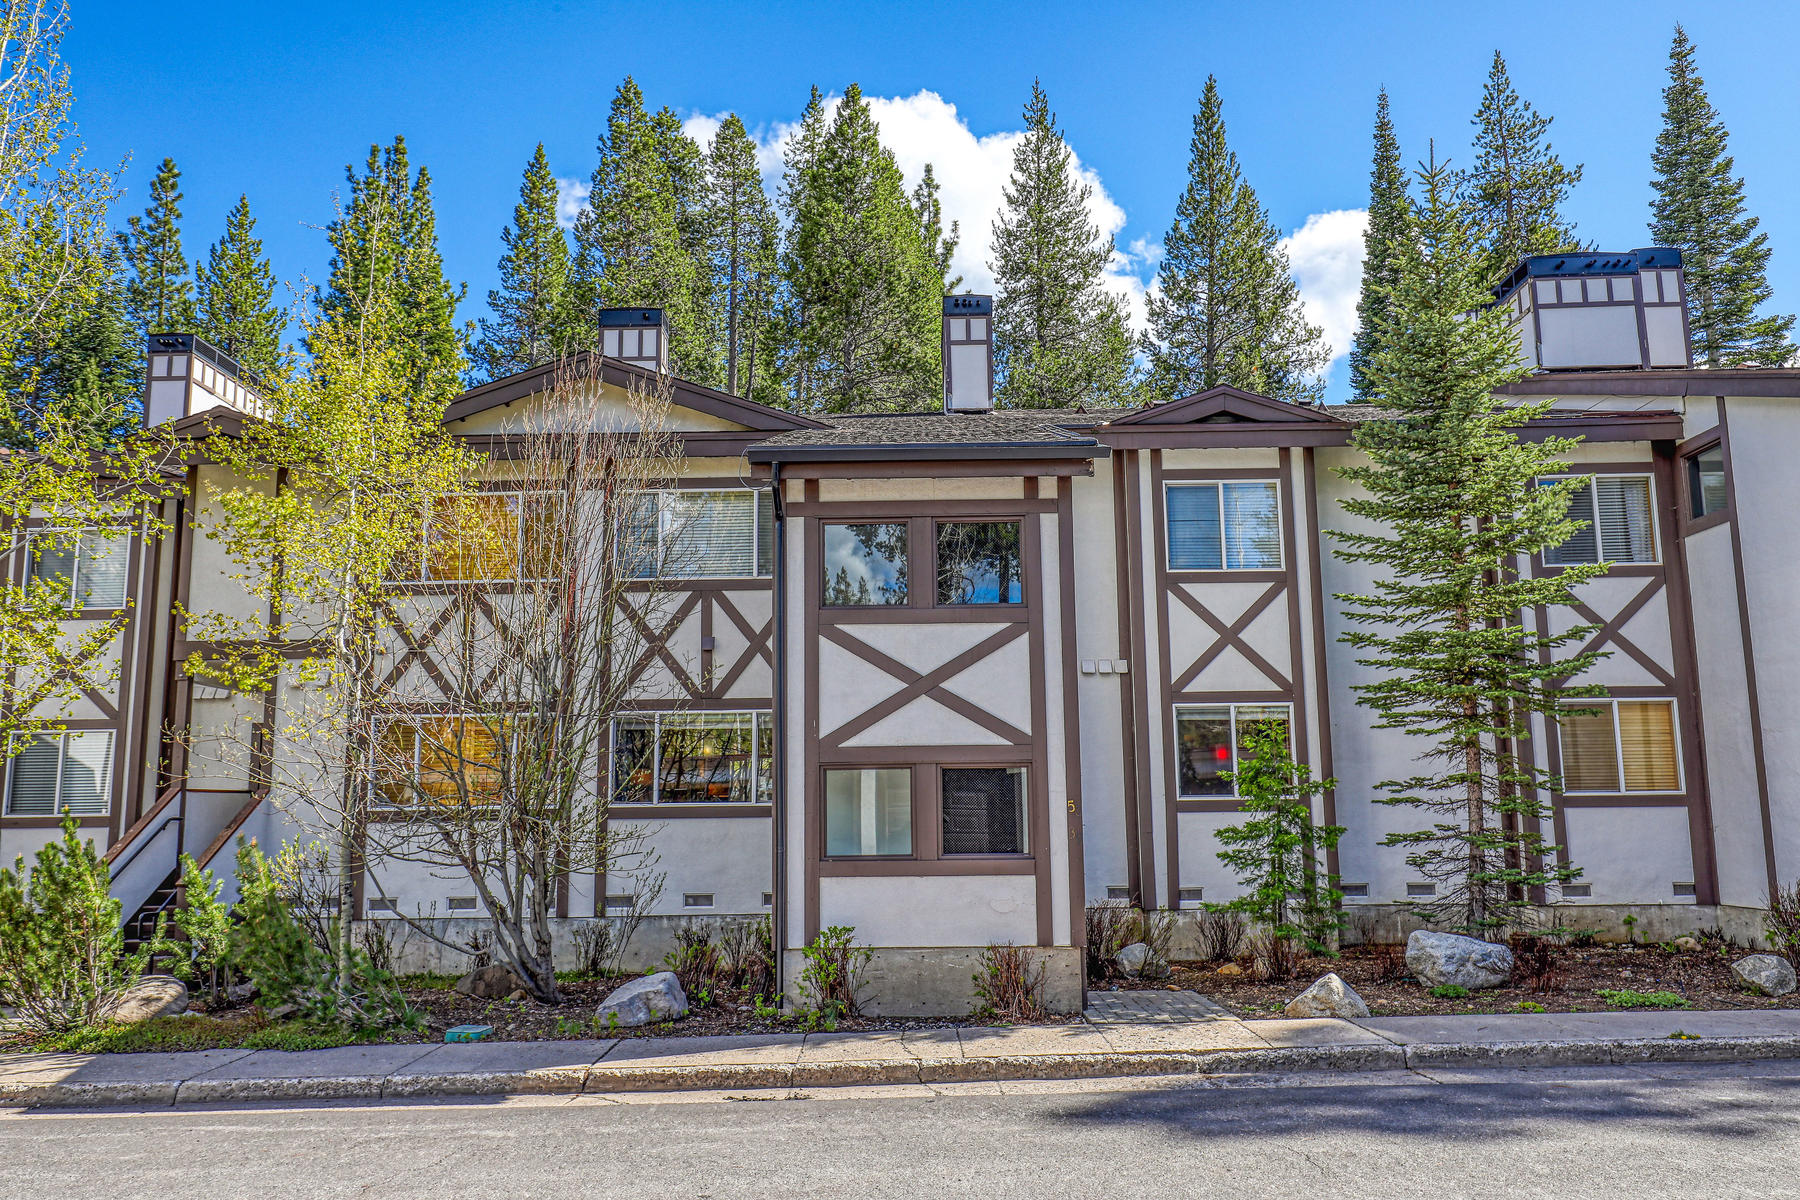 Condominiums for Active at Tavern Inn condo 227 Squaw Valley Road, Unit #39 Olympic Valley, California 96146 United States